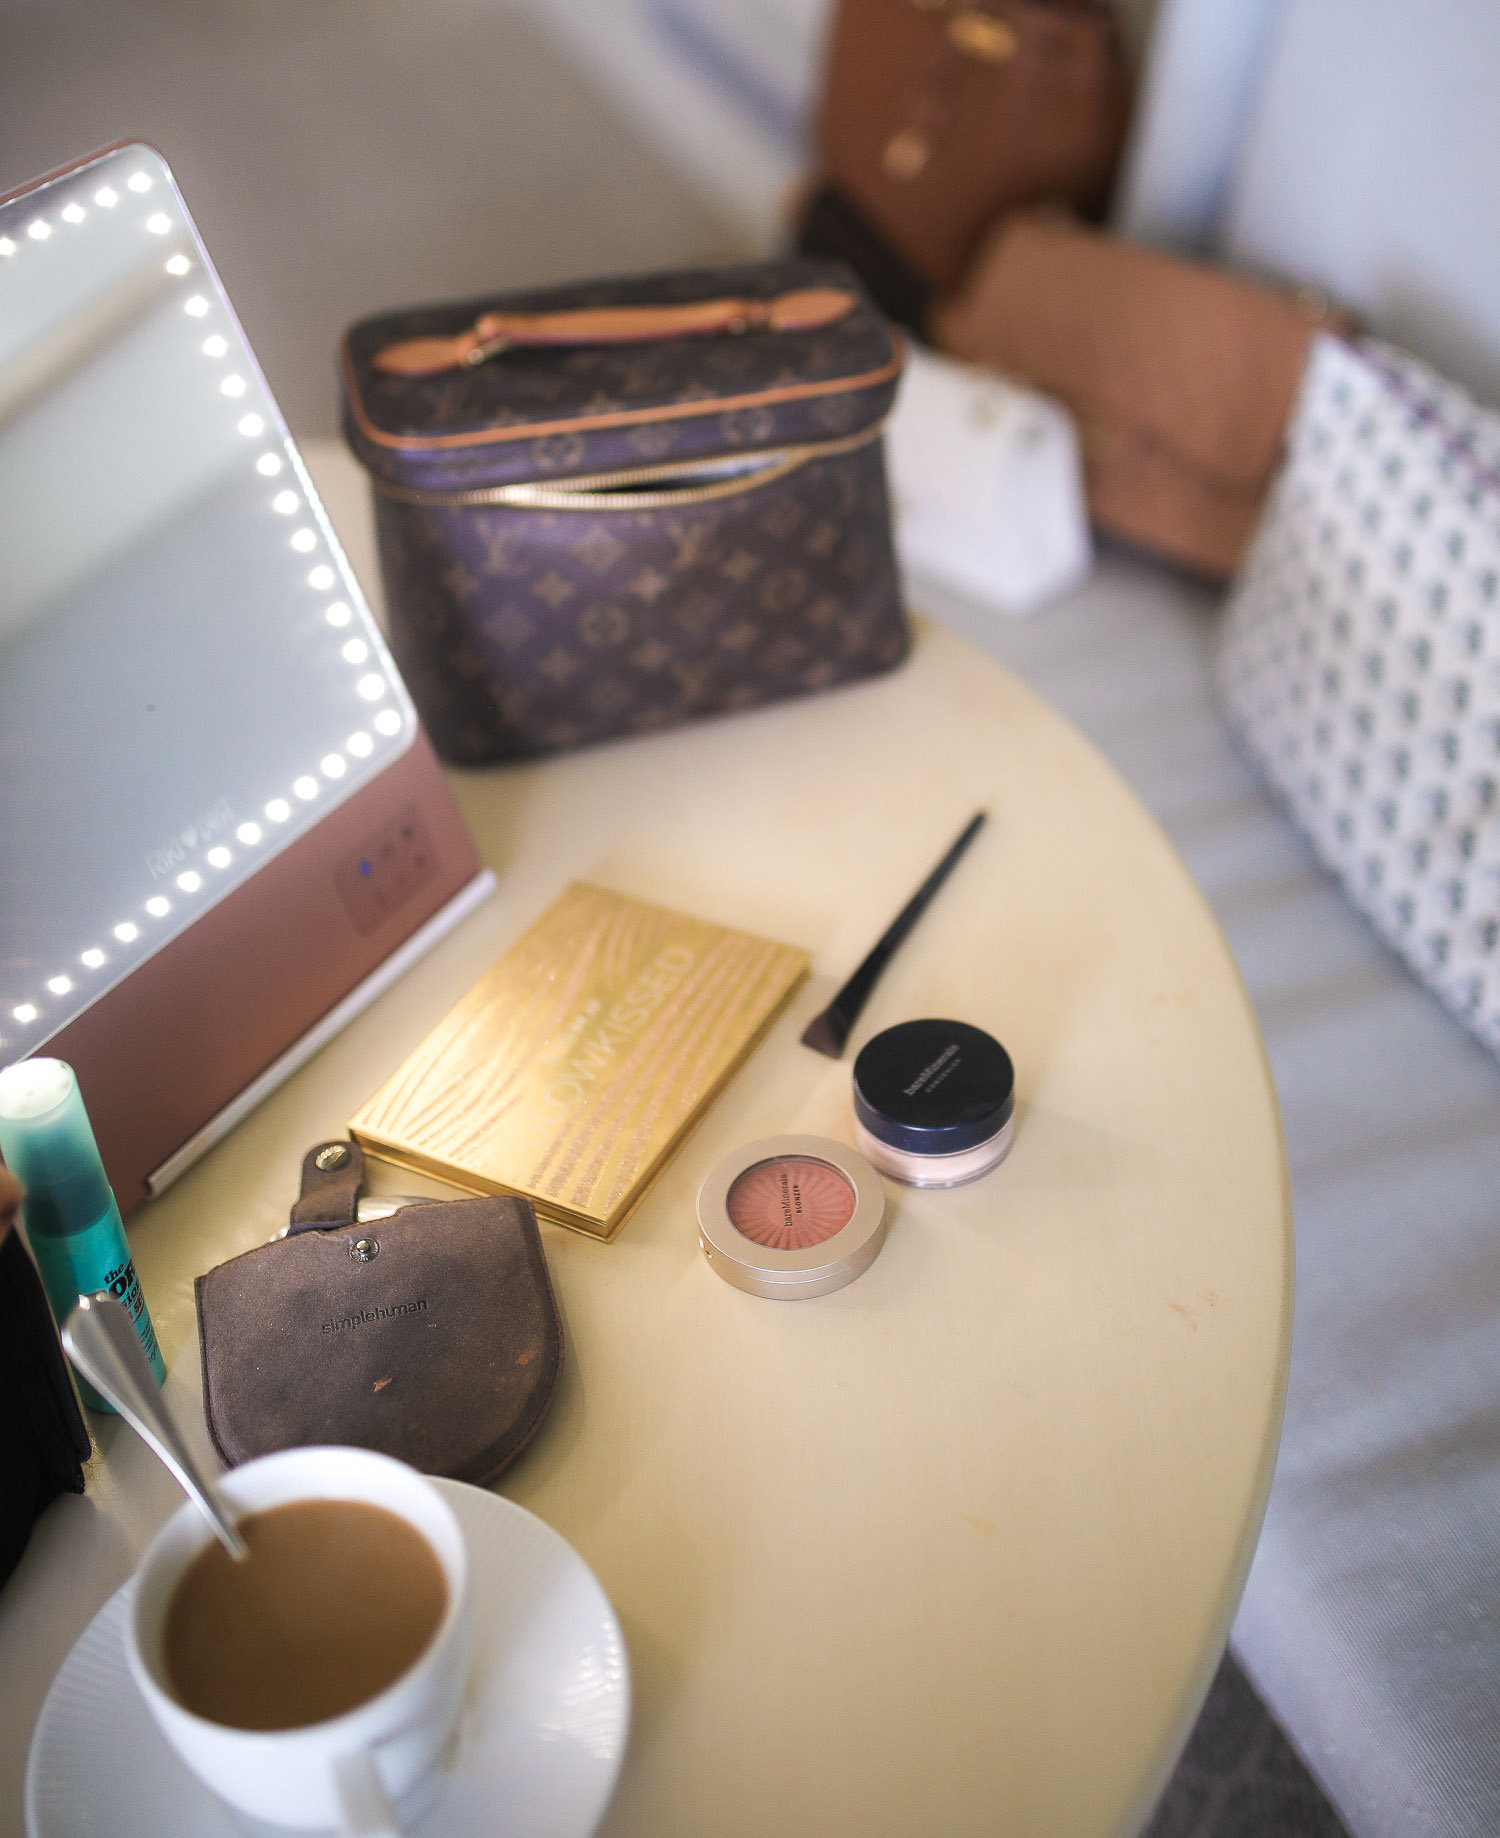 Bare minerals triangle makeup brush, best makeup brush for undereye concealer, amazon makeup travel must haves | Travel Hacks by popular life and style blog, The Sweetest Thing: image of a makeup mirror, Louis Vuitton makeup bag, makeup pallet, makeup brush and blush.